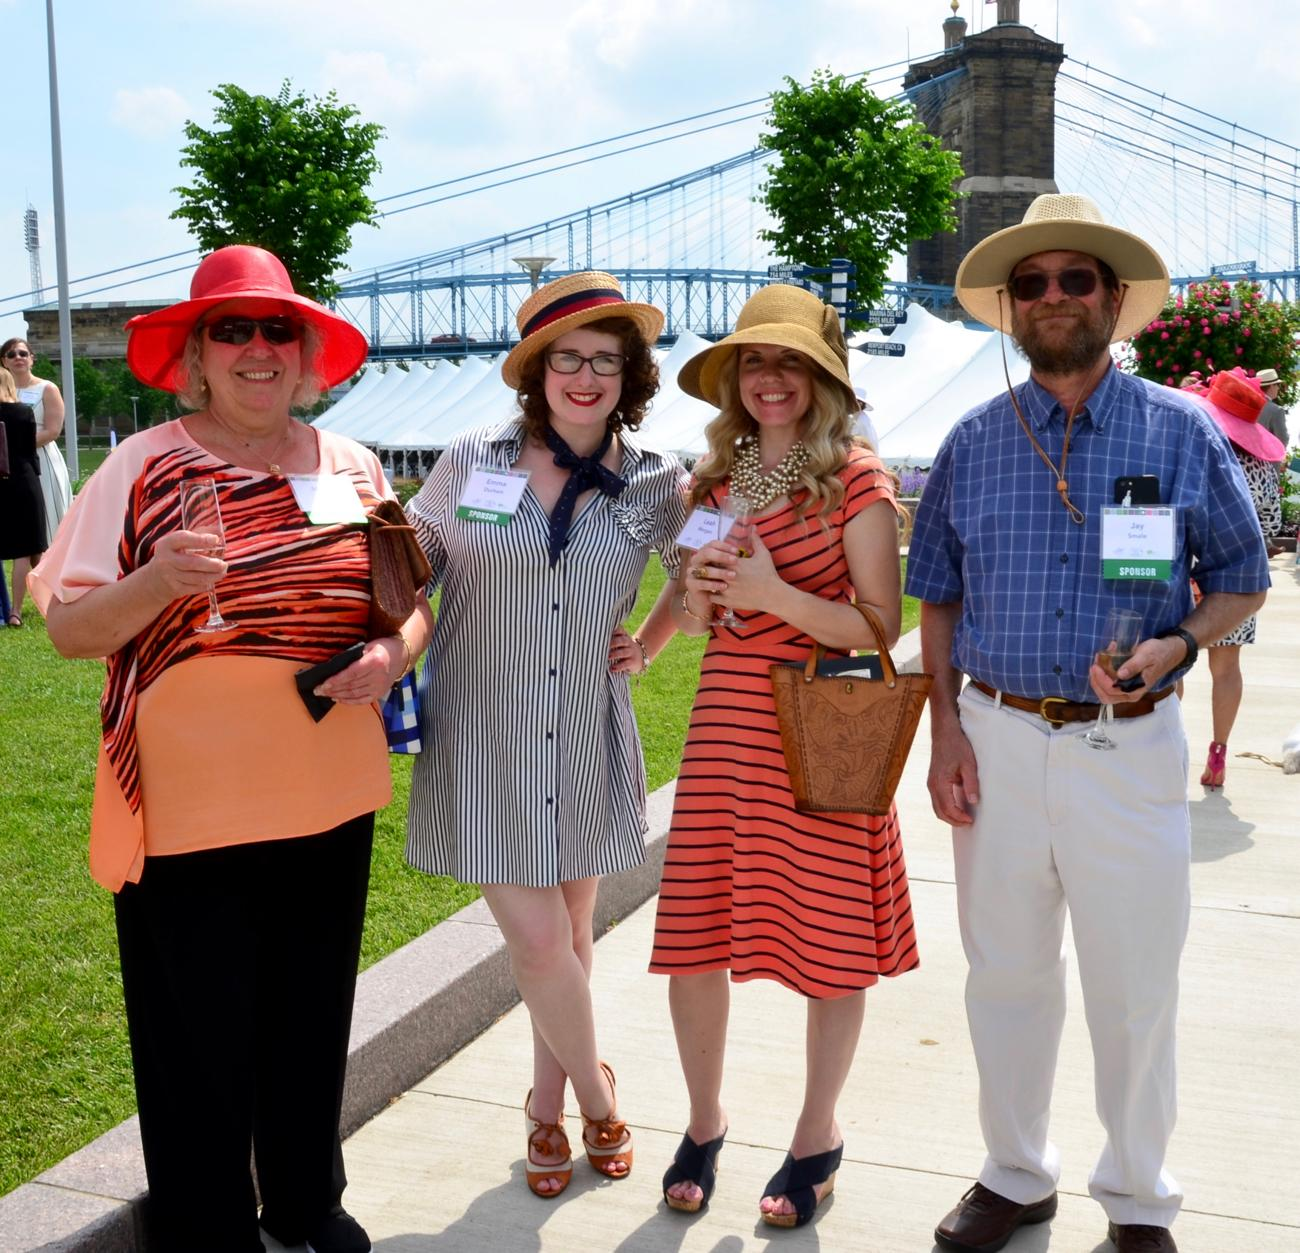 Joanne Smale, Emma Durham, Leah Morgan, and Jay Smale / Image: Leah Zipperstein, Cincinnati Refined // Published: 5.18.18